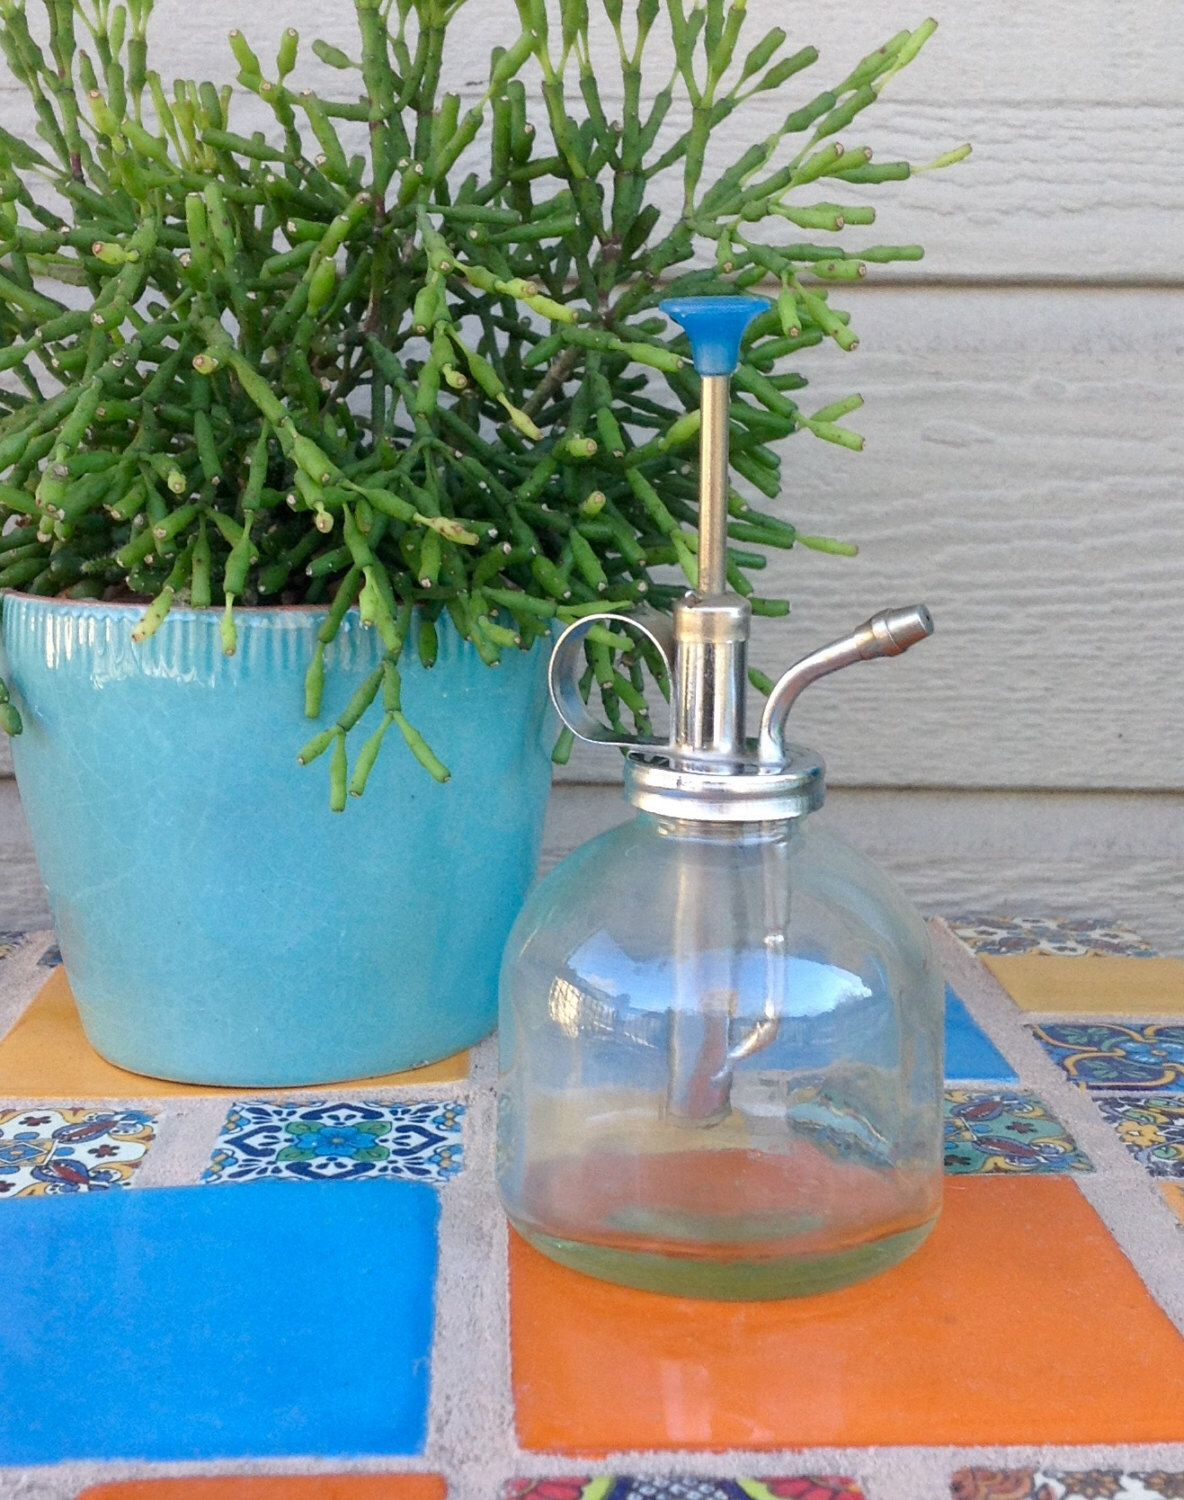 FREE SHIPPING-Vintage Clear Glass Plant Mister-Atomizer-Plant Sprayer-Soap Dispenser-Vintage Garden-Plant Decor-Bohemian-Garden Decor-Retro by ellansrelics02 on Etsy https://www.etsy.com/listing/478470560/free-shipping-vintage-clear-glass-plant